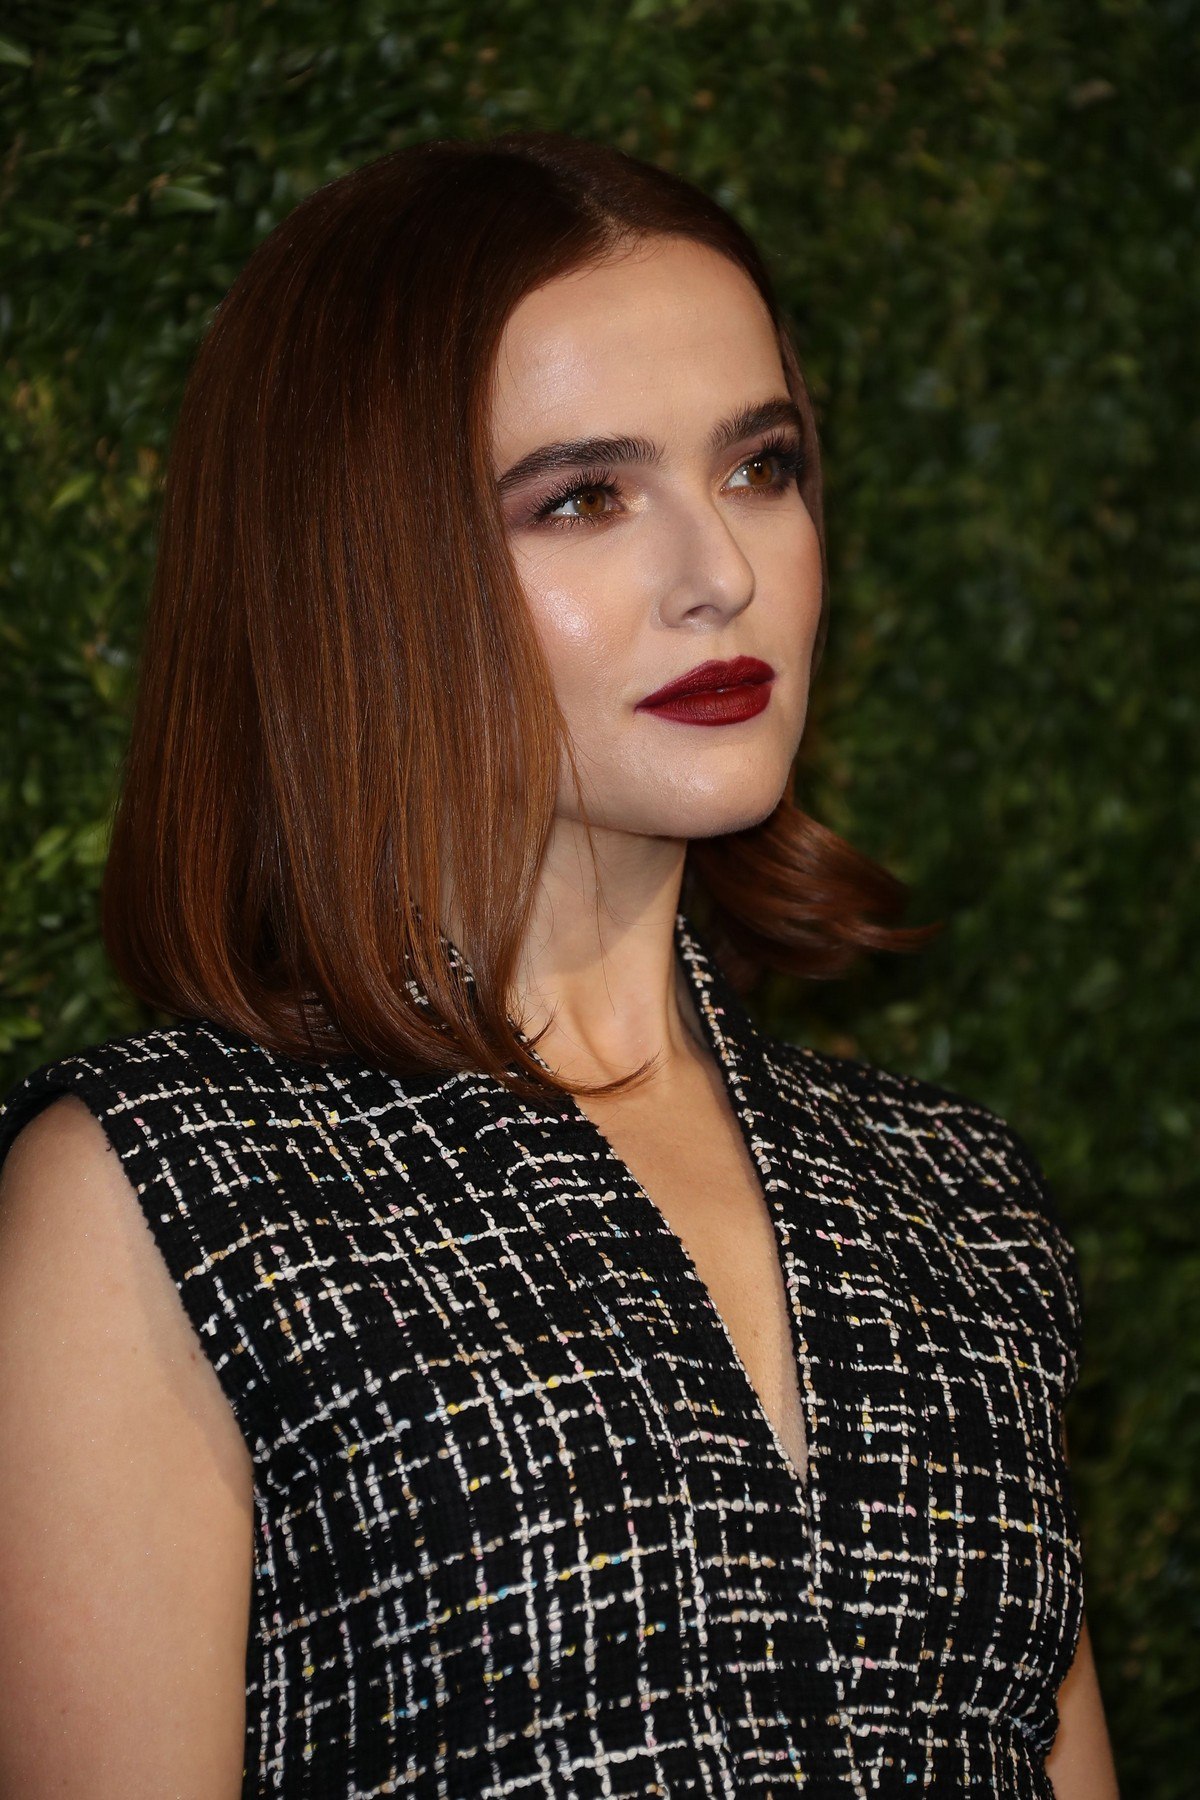 The Sexiest Zoey Deutch Pictures Ever - Barnorama